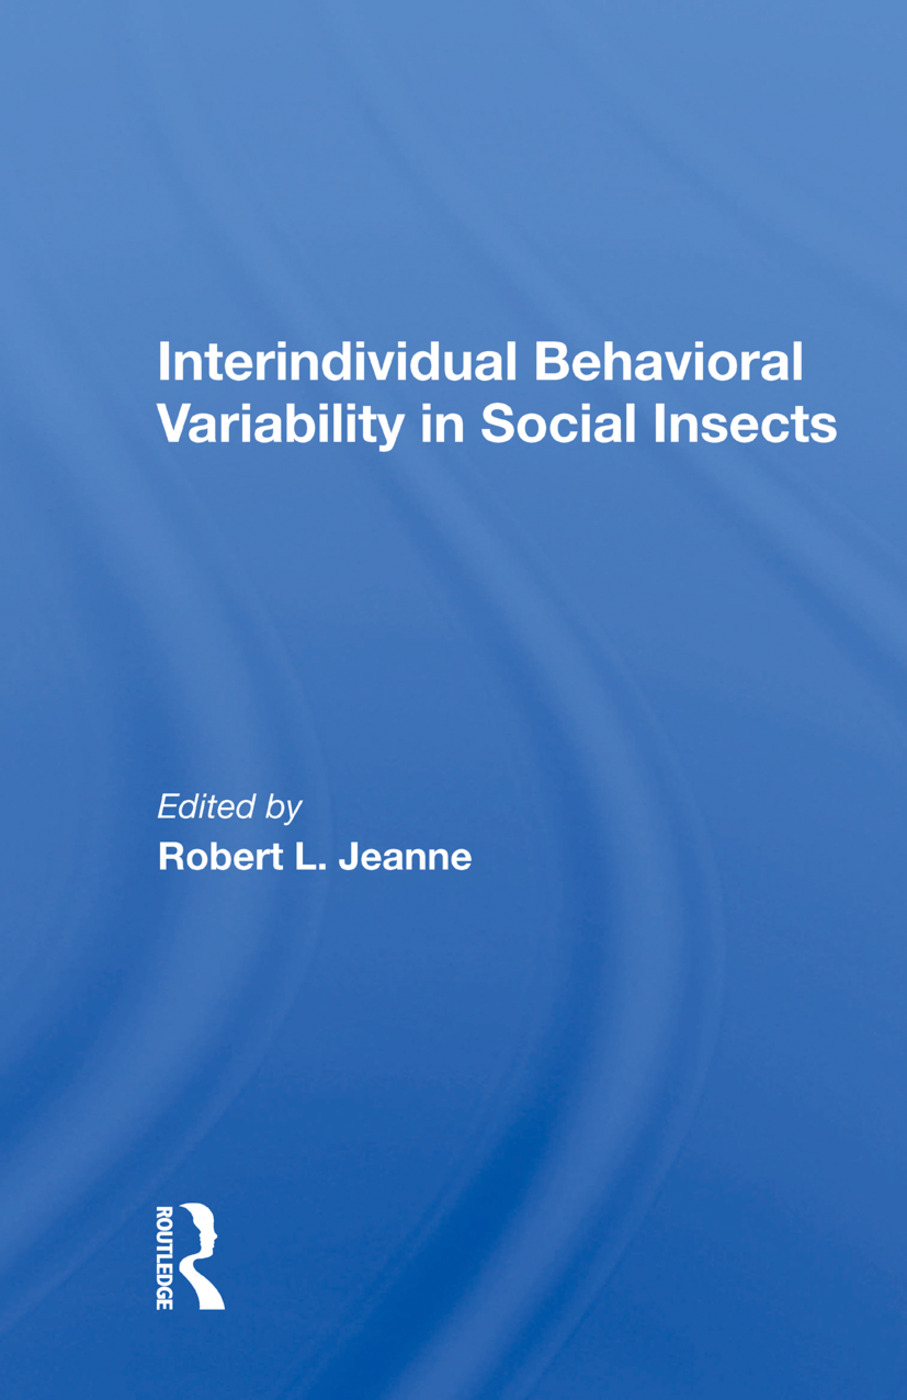 Interindividual Behavioral Variability in Social Insects